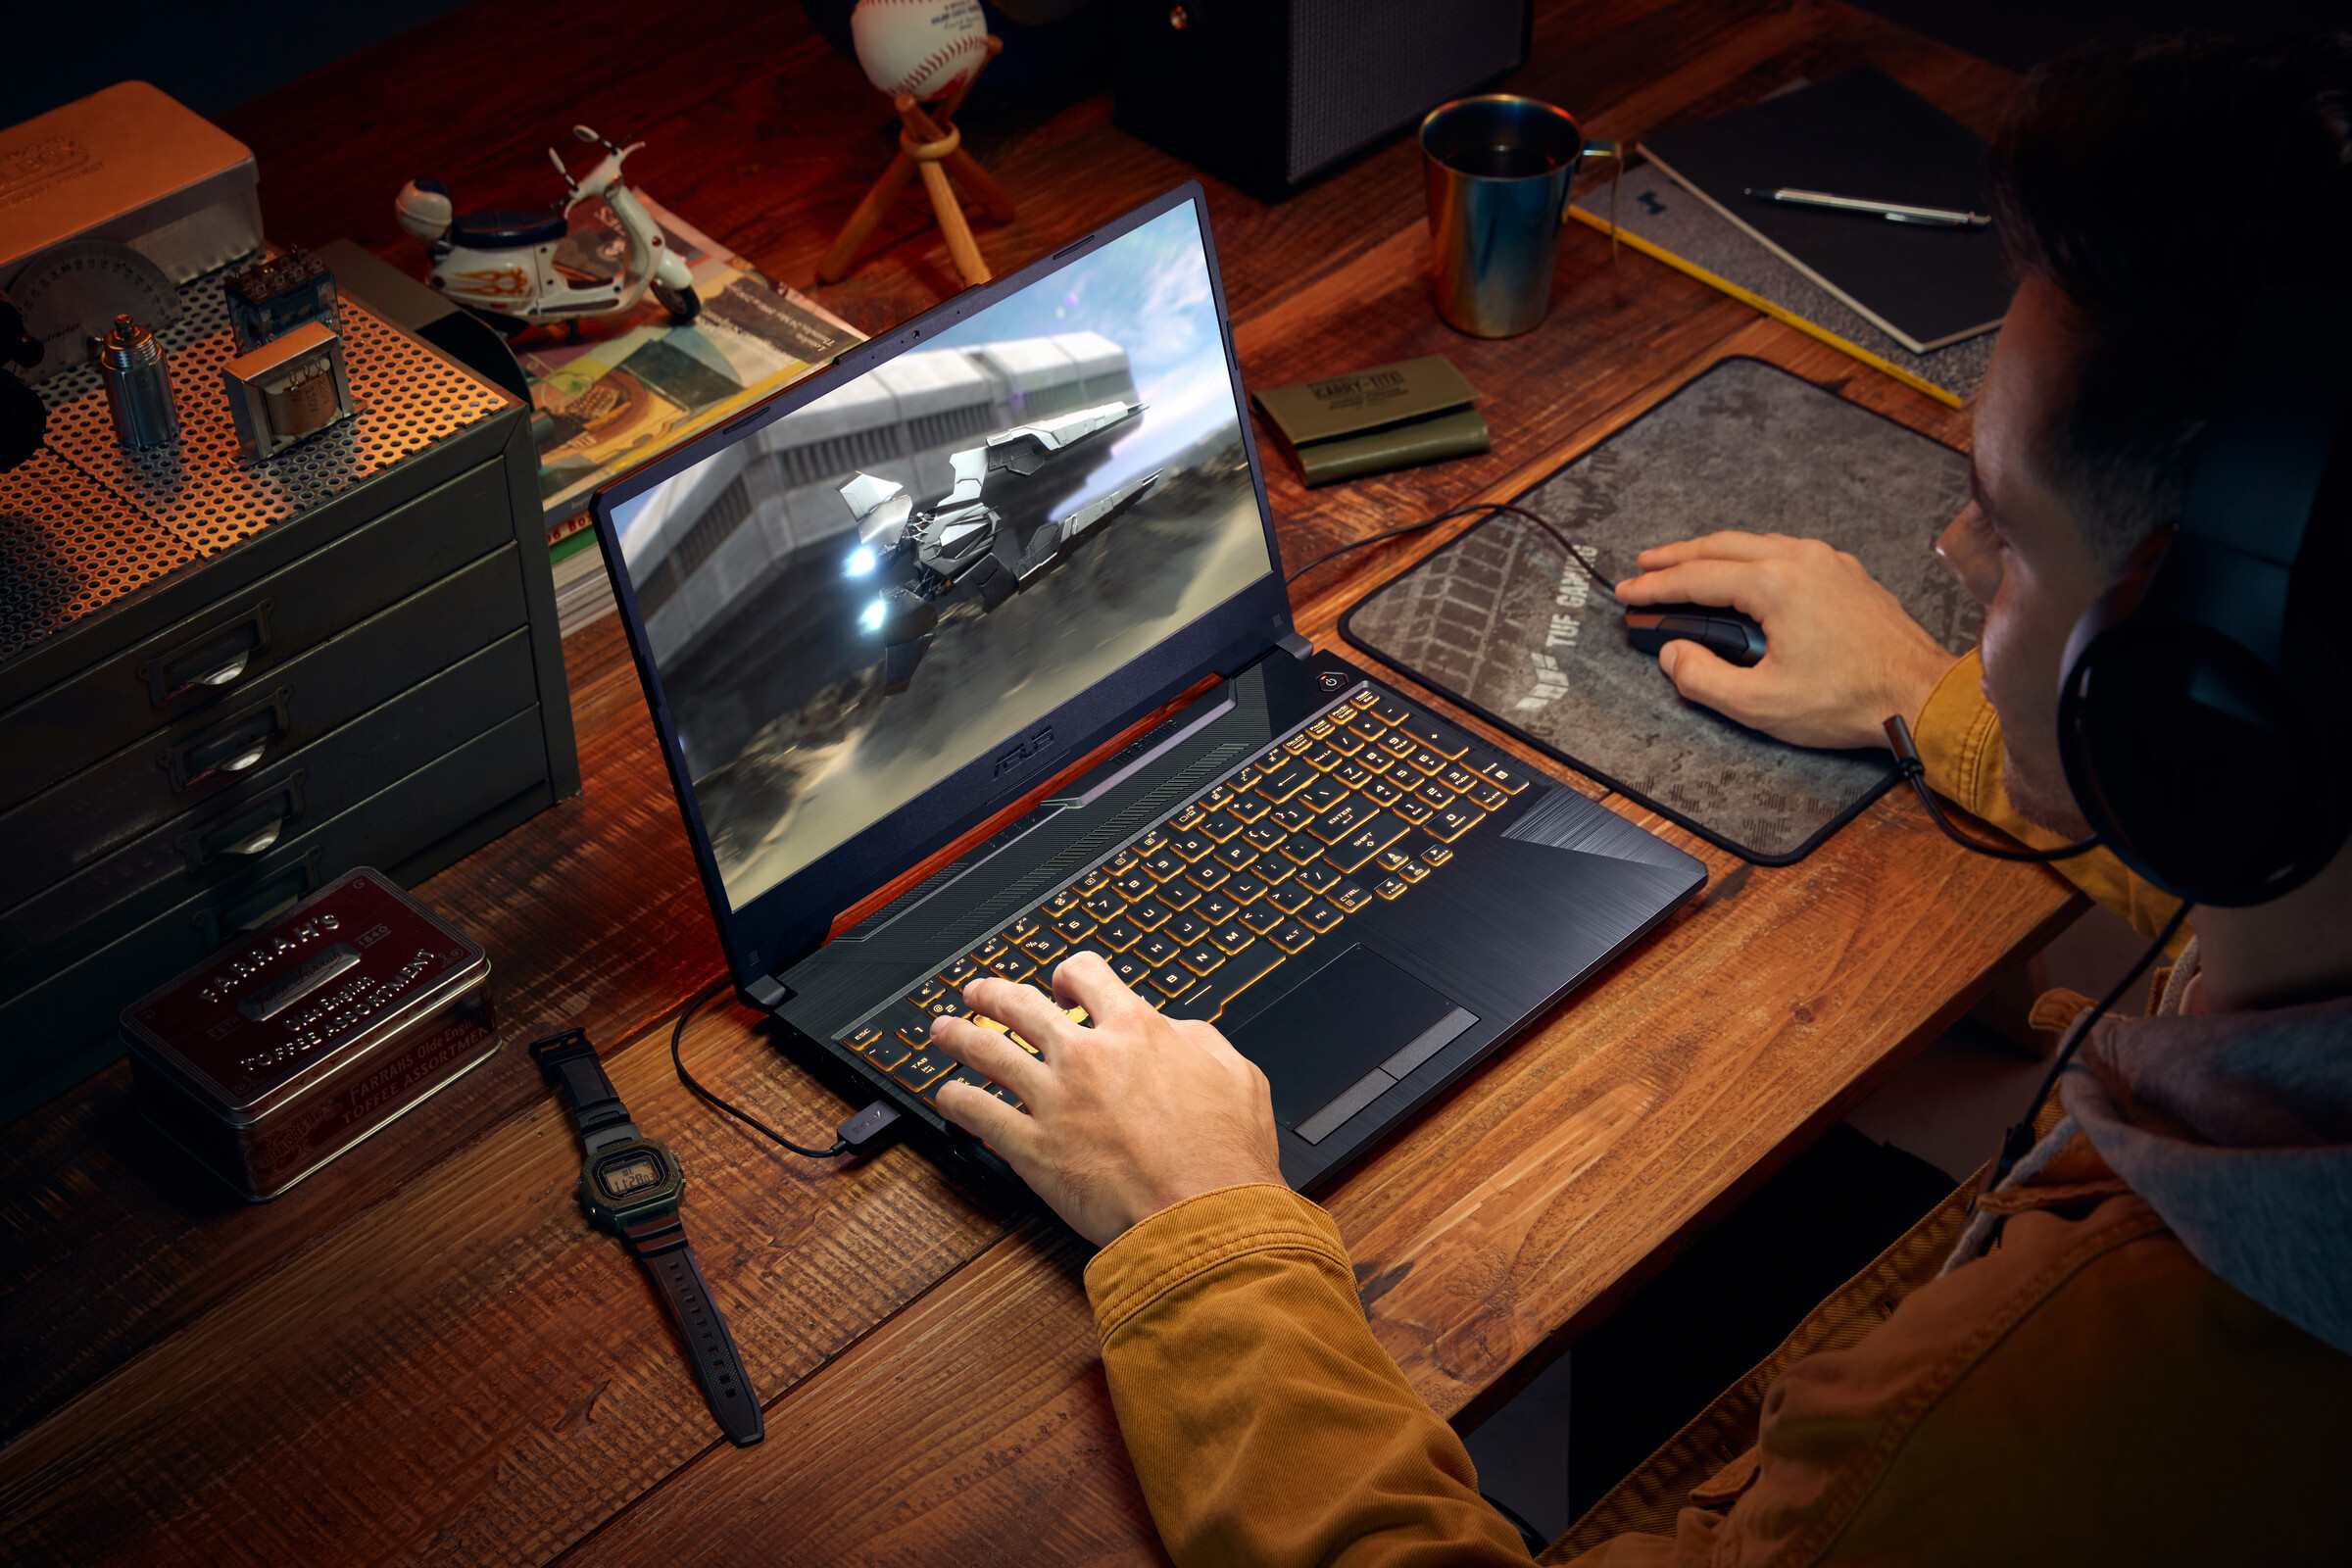 Asus TUF Gaming F15 and F17 gaming laptops launched with an Intel Core i9-11900H processor, 240Hz screen, and more - NotebookCheck.net News